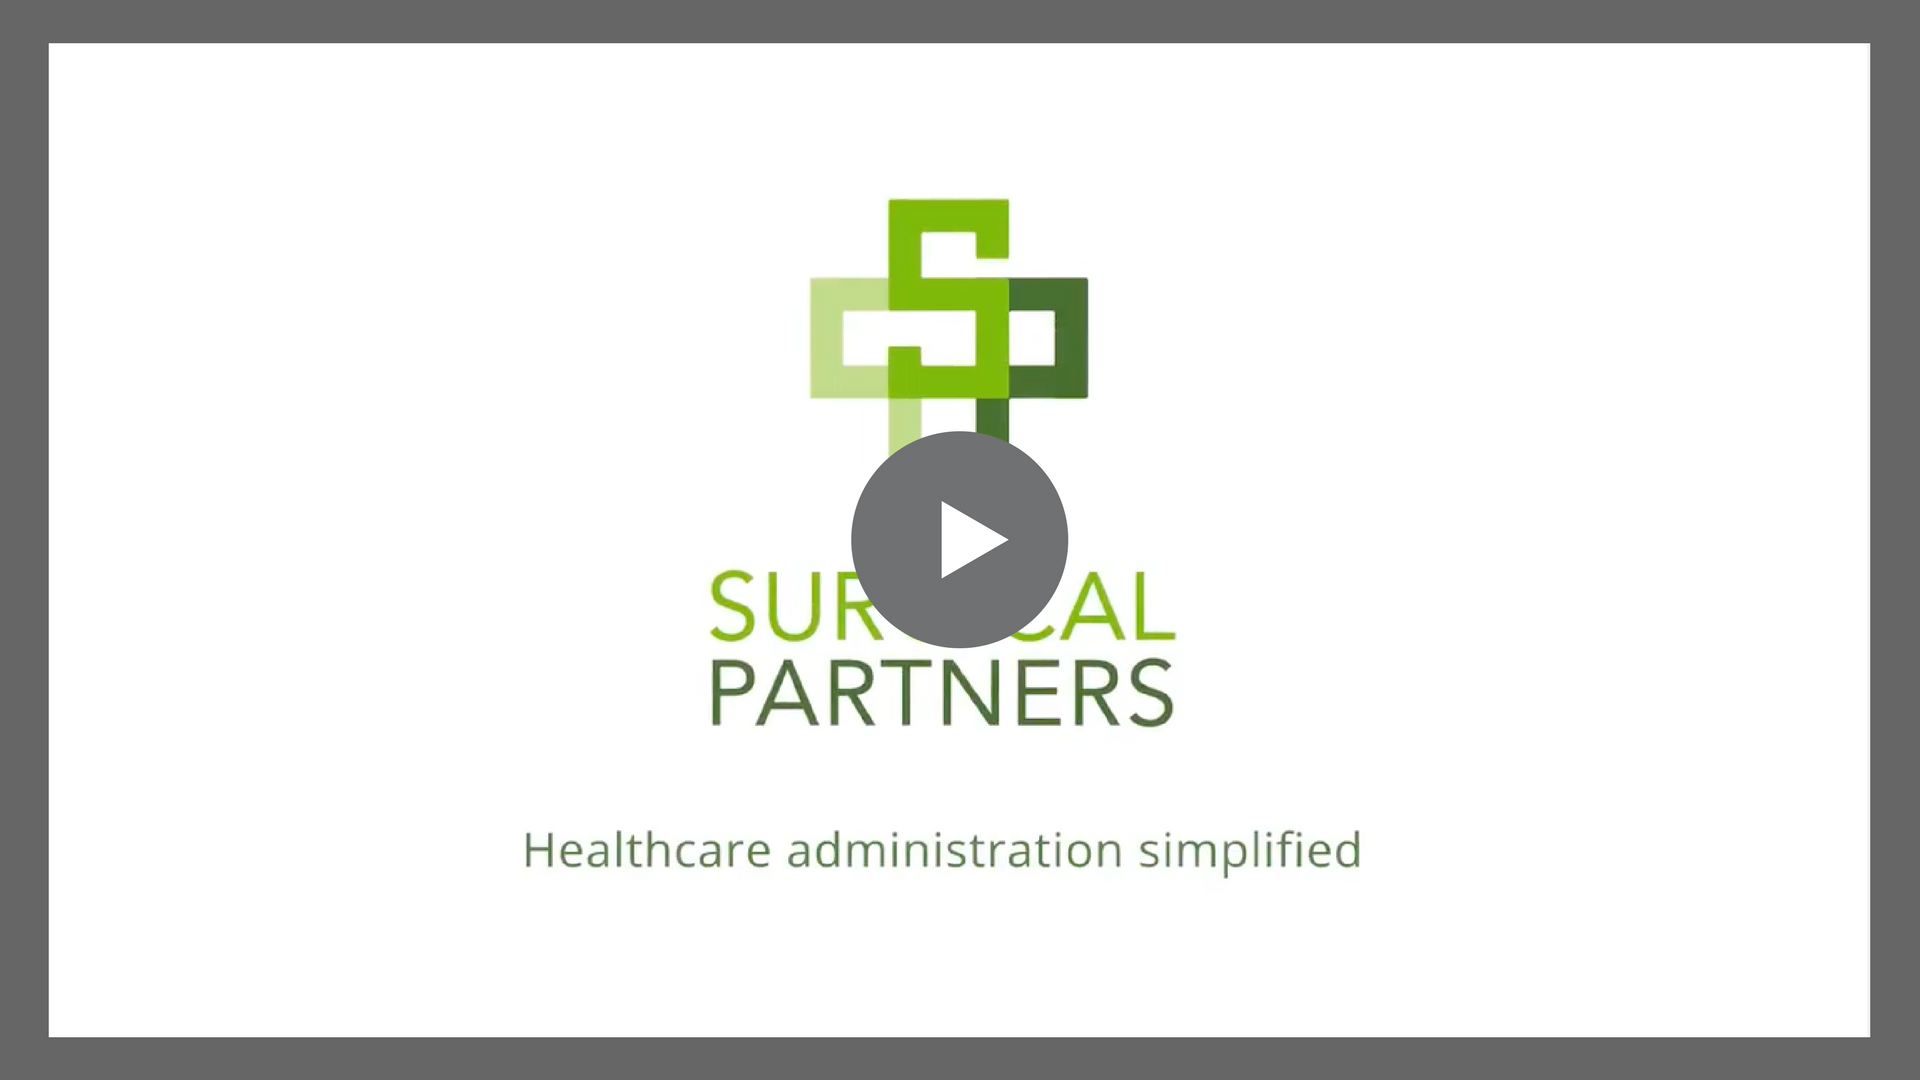 CTA Surgical Partners VIdeo